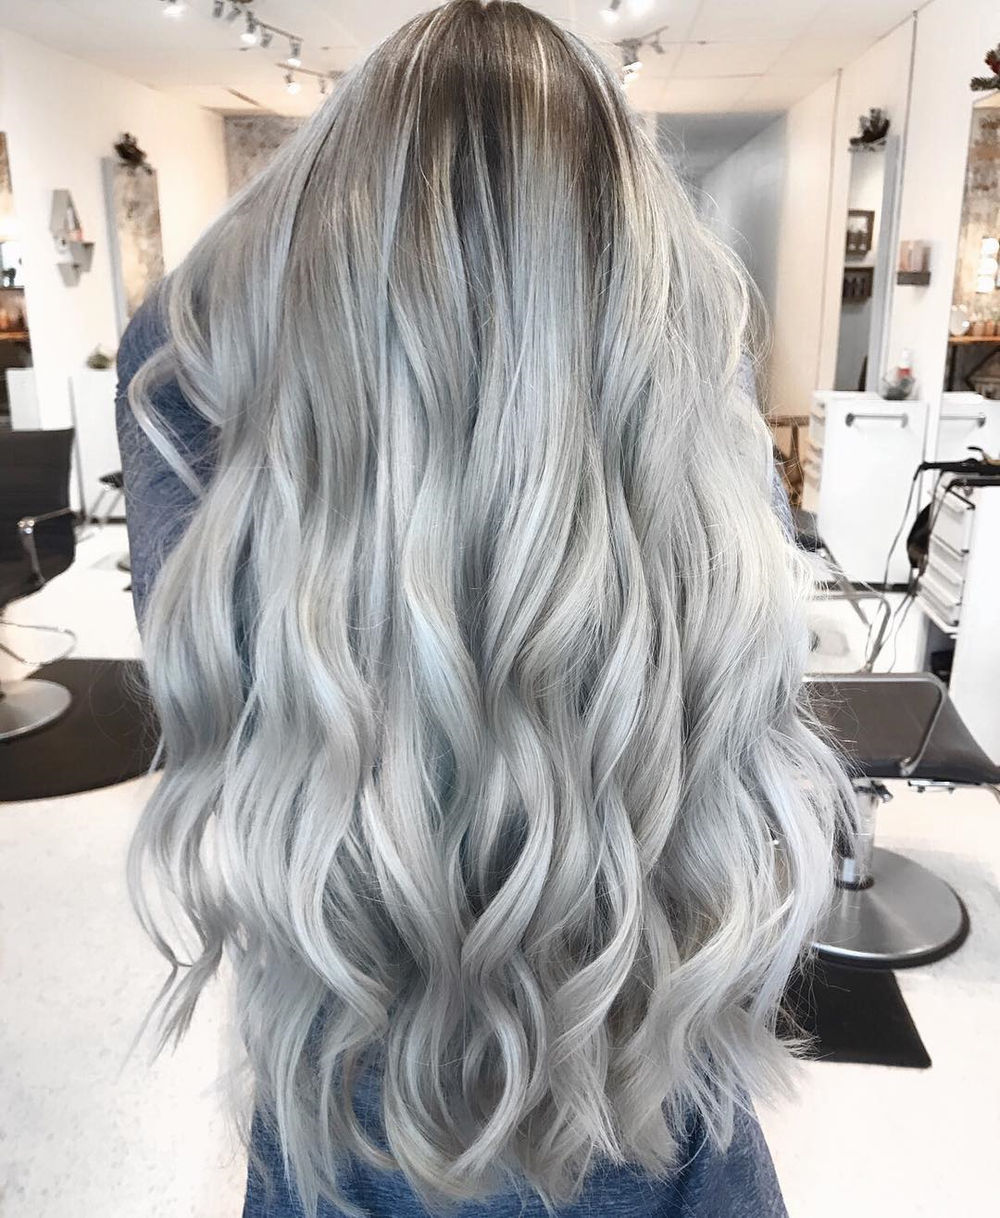 Extra Long Silver Hair with Curls